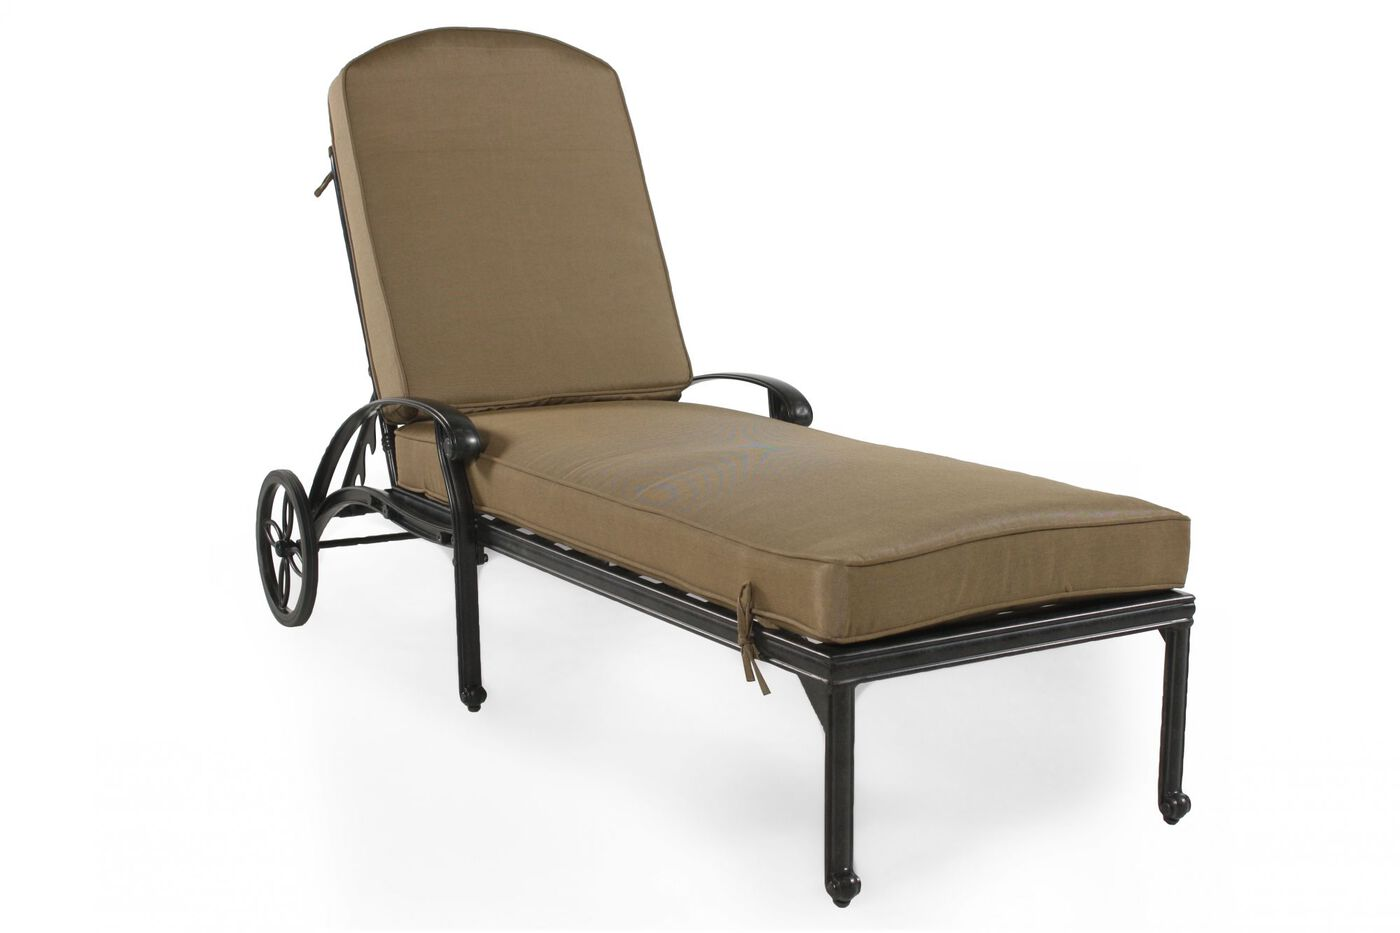 Mathis Brothers Patio Furniture world source st. louis chaise lounge with cushion | mathis